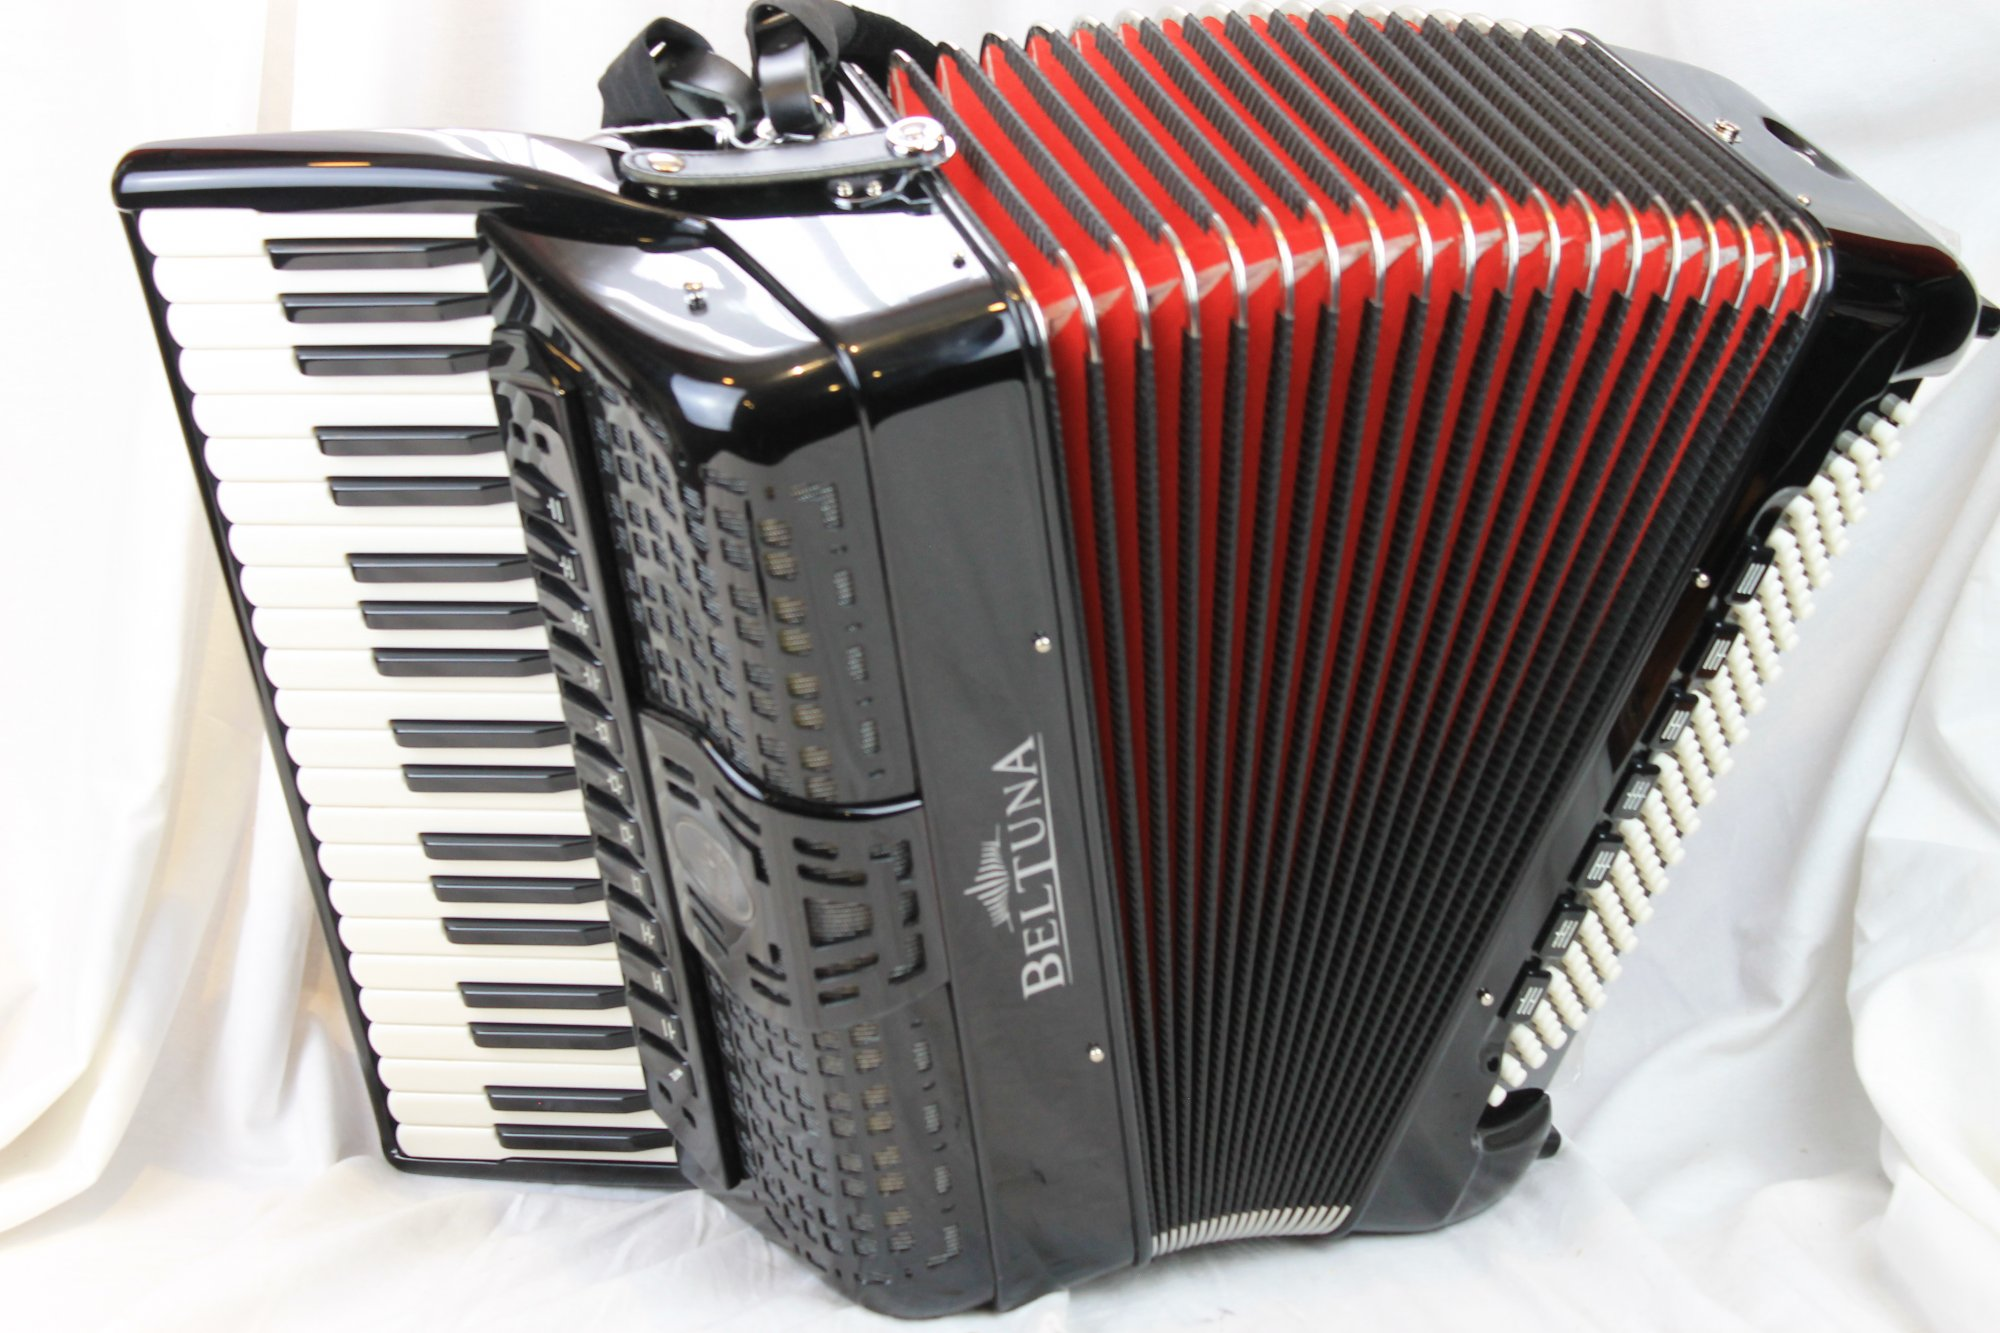 NEW Black Beltuna Prestige IV Piano Accordion Slender LMMH 41 120